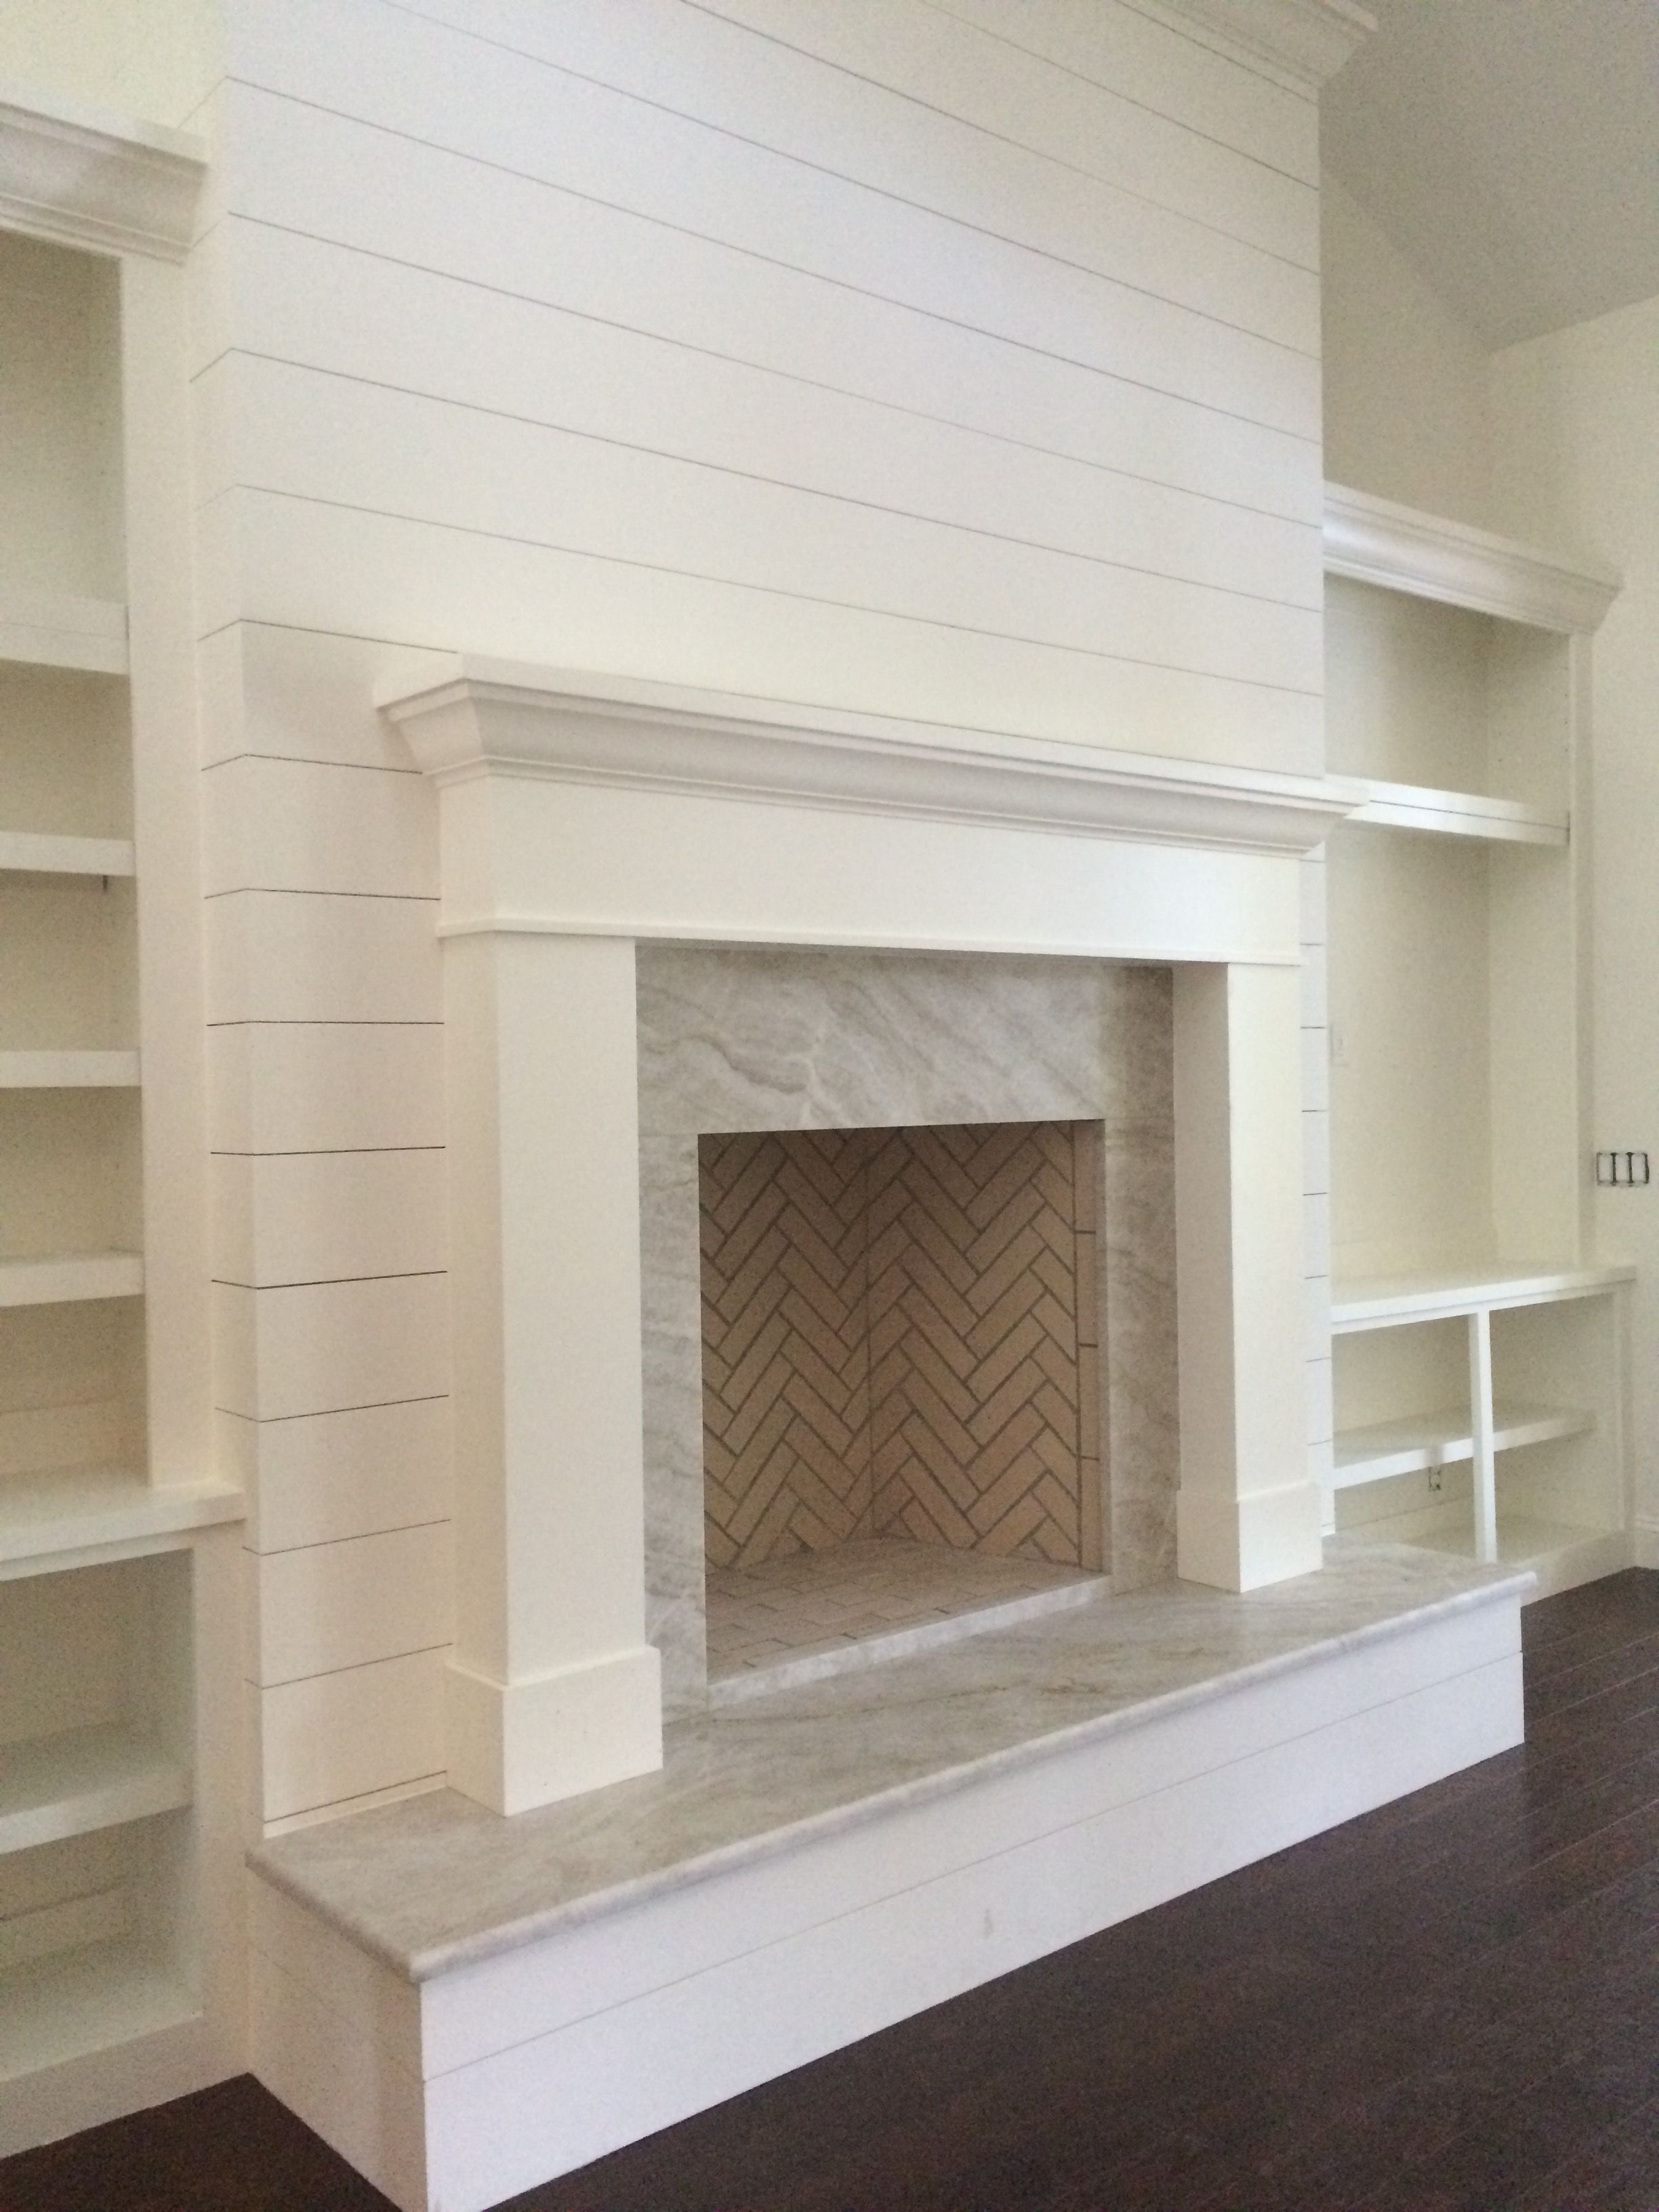 Love This Fireplace Remodel Would Be So Pretty With A Wood Stove Sitting Inside Home Fireplace Fireplace Remodel Fireplace Makeover